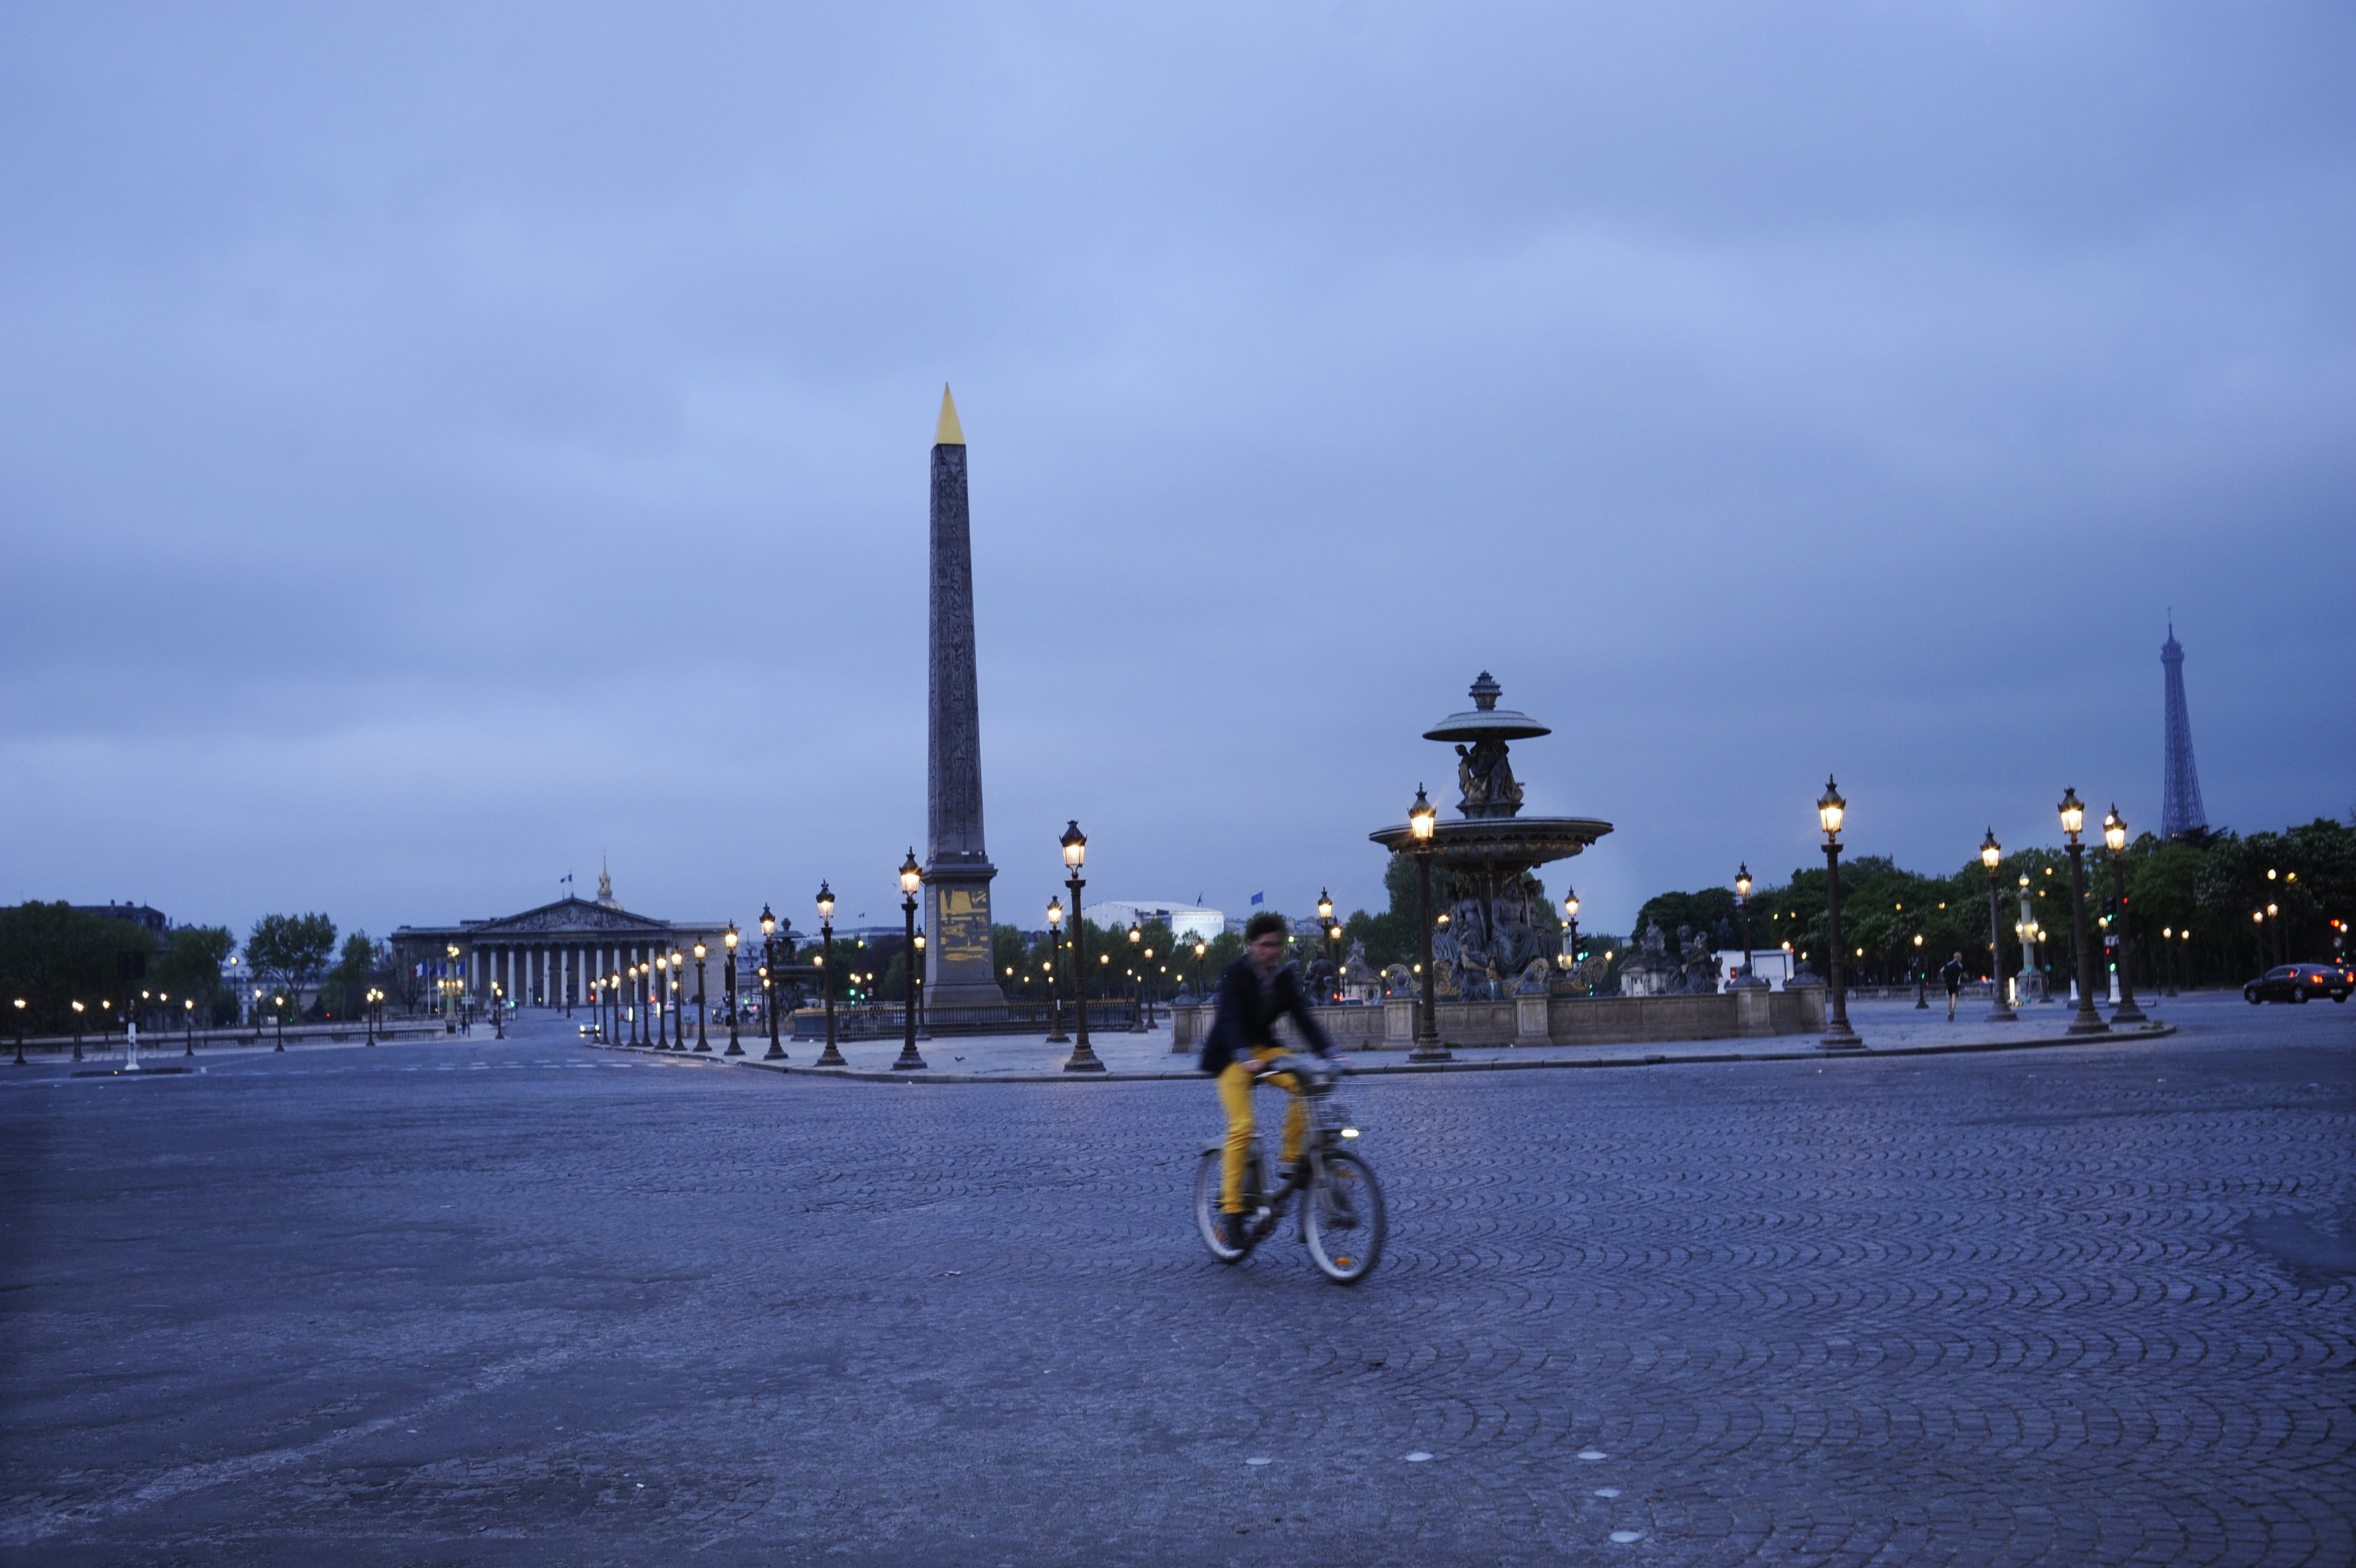 A bicyclist at the Place de la Concorde at dawn in Paris, April 13, 2014. When traveling alone in Paris, one can become acutely aware of innumerable sensual details that can otherwise be diluted, even missed, when chattering with someone or collaborating on an itinerary. (Agnes Dherbeys/The New York Times) — PHOTO MOVED IN ADVANCE AND NOT FOR USE – ONLINE OR IN PRINT – BEFORE MAY 04, 2014. —